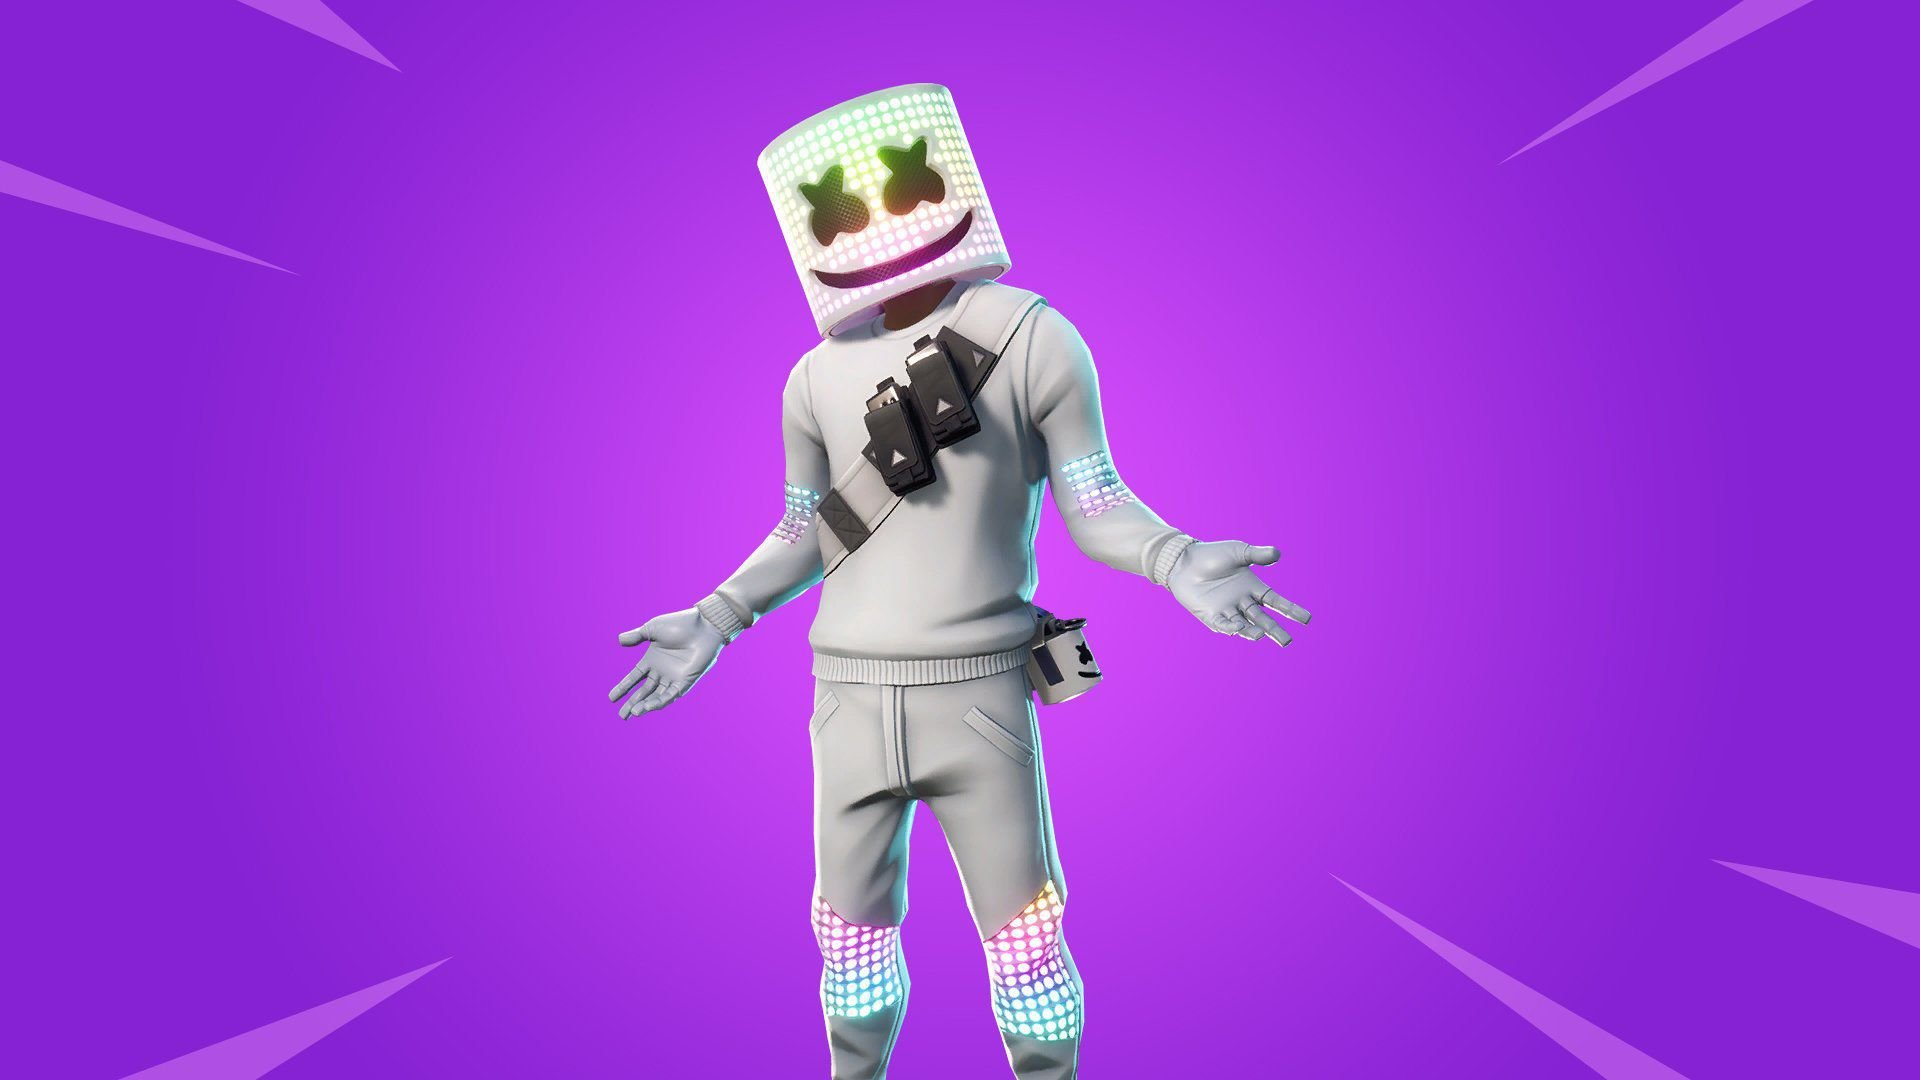 Marshmello Fortnite Skin Wallpapers for Your Browser   Supertab 1920x1080